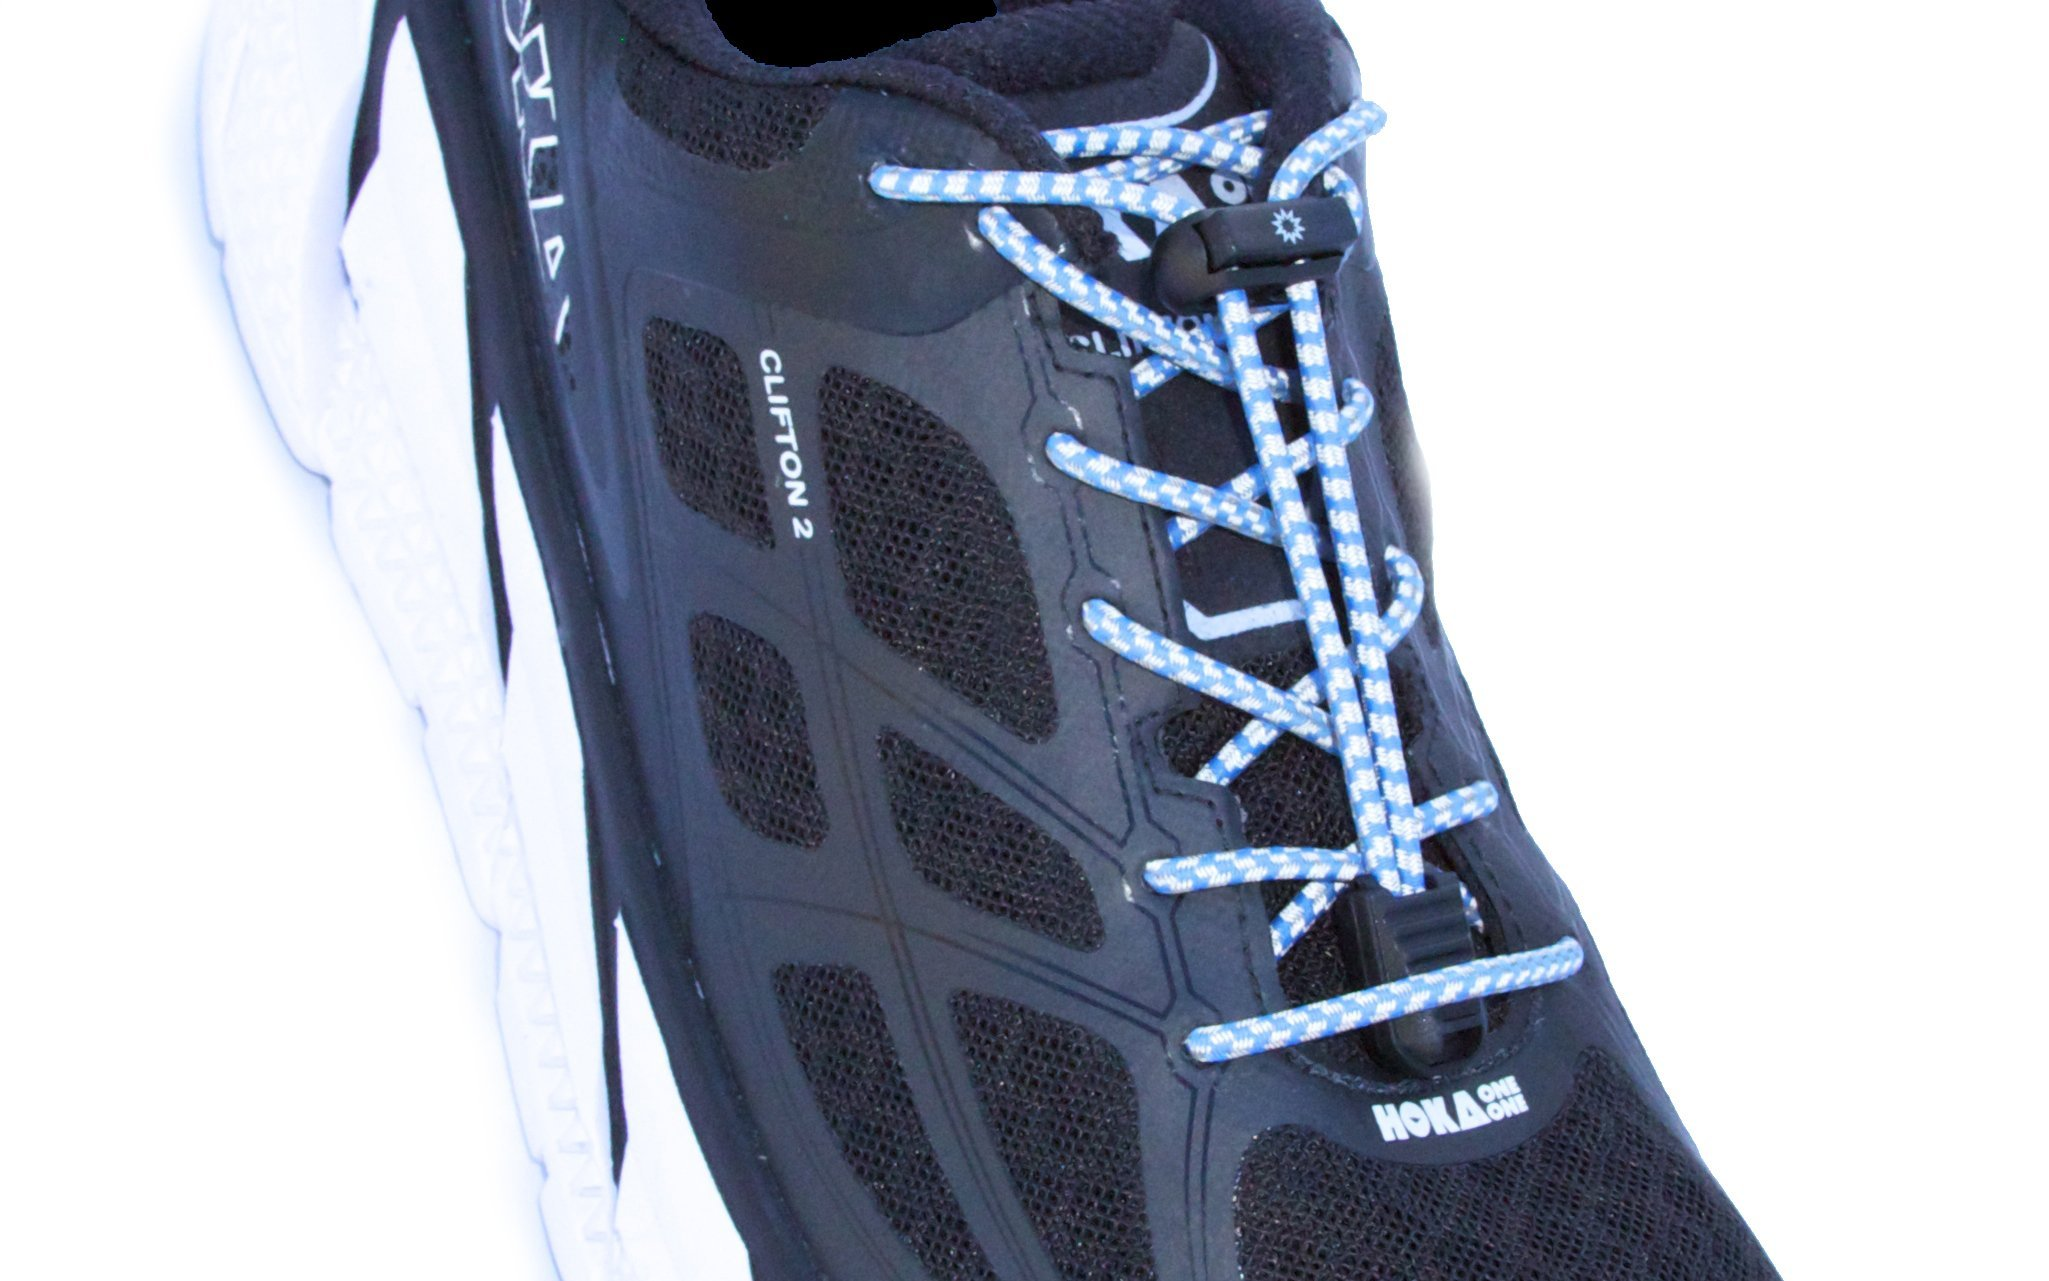 BoomLaces ''Laces With Power'' Compression Stretch Elastic Athletic Travel No Tie Shoelaces With Lock. For Kids, Women, Men. Shoe Laces Lock For Comfort, Security, Safety(Reflective Blue/Gray)